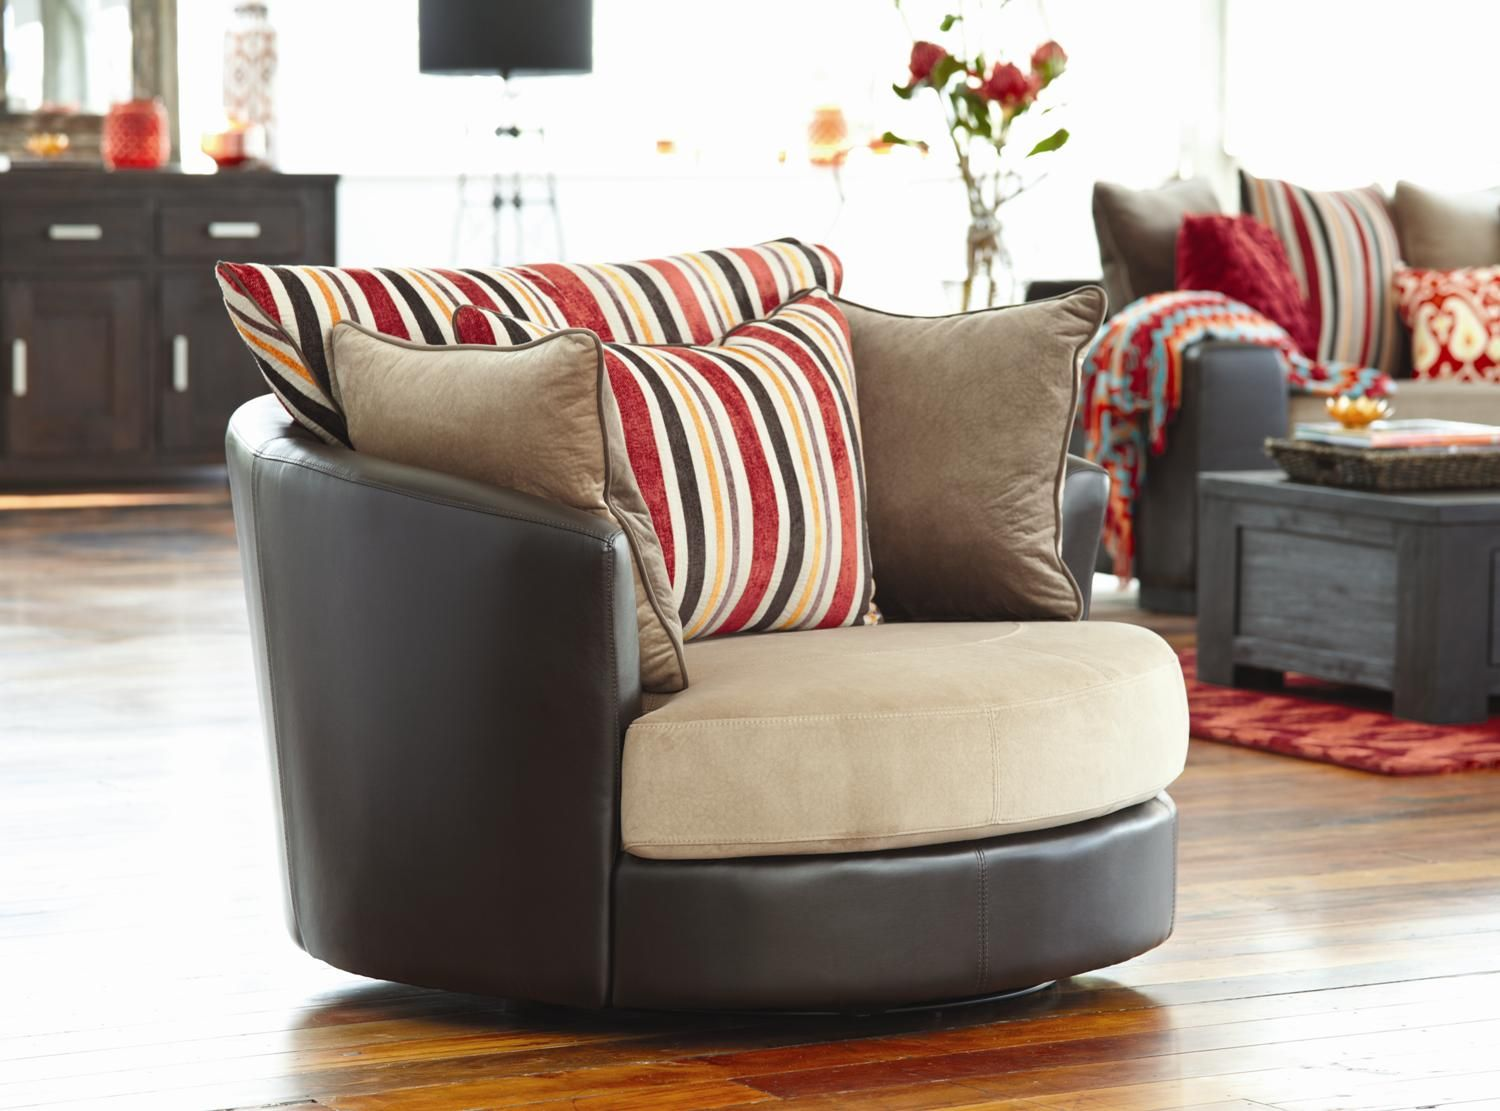 Boston Swivel Chair Large Brown from Harvey Norman NewZealand  sc 1 st  Pinterest : recliner chairs harvey norman - islam-shia.org